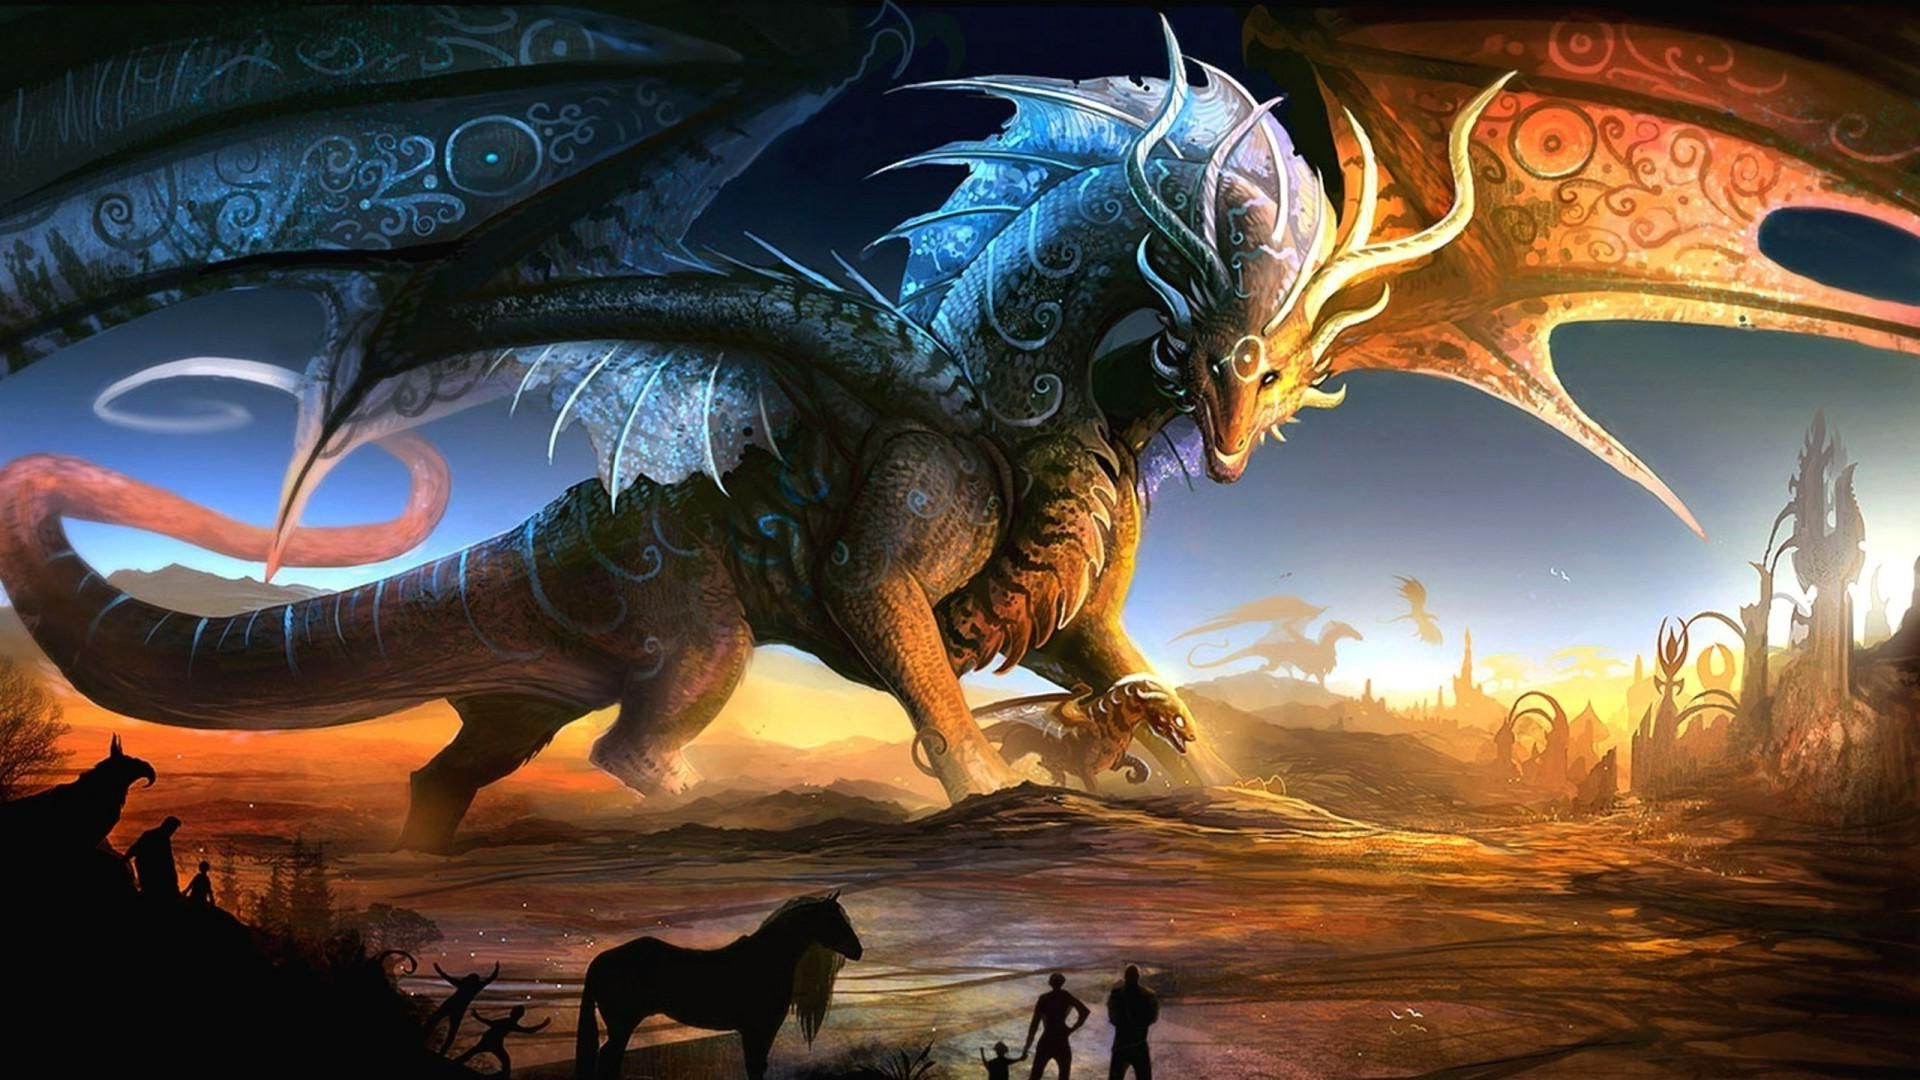 3D Fantasy Dragon [1920x1080] Need #iPhone #6S #Plus